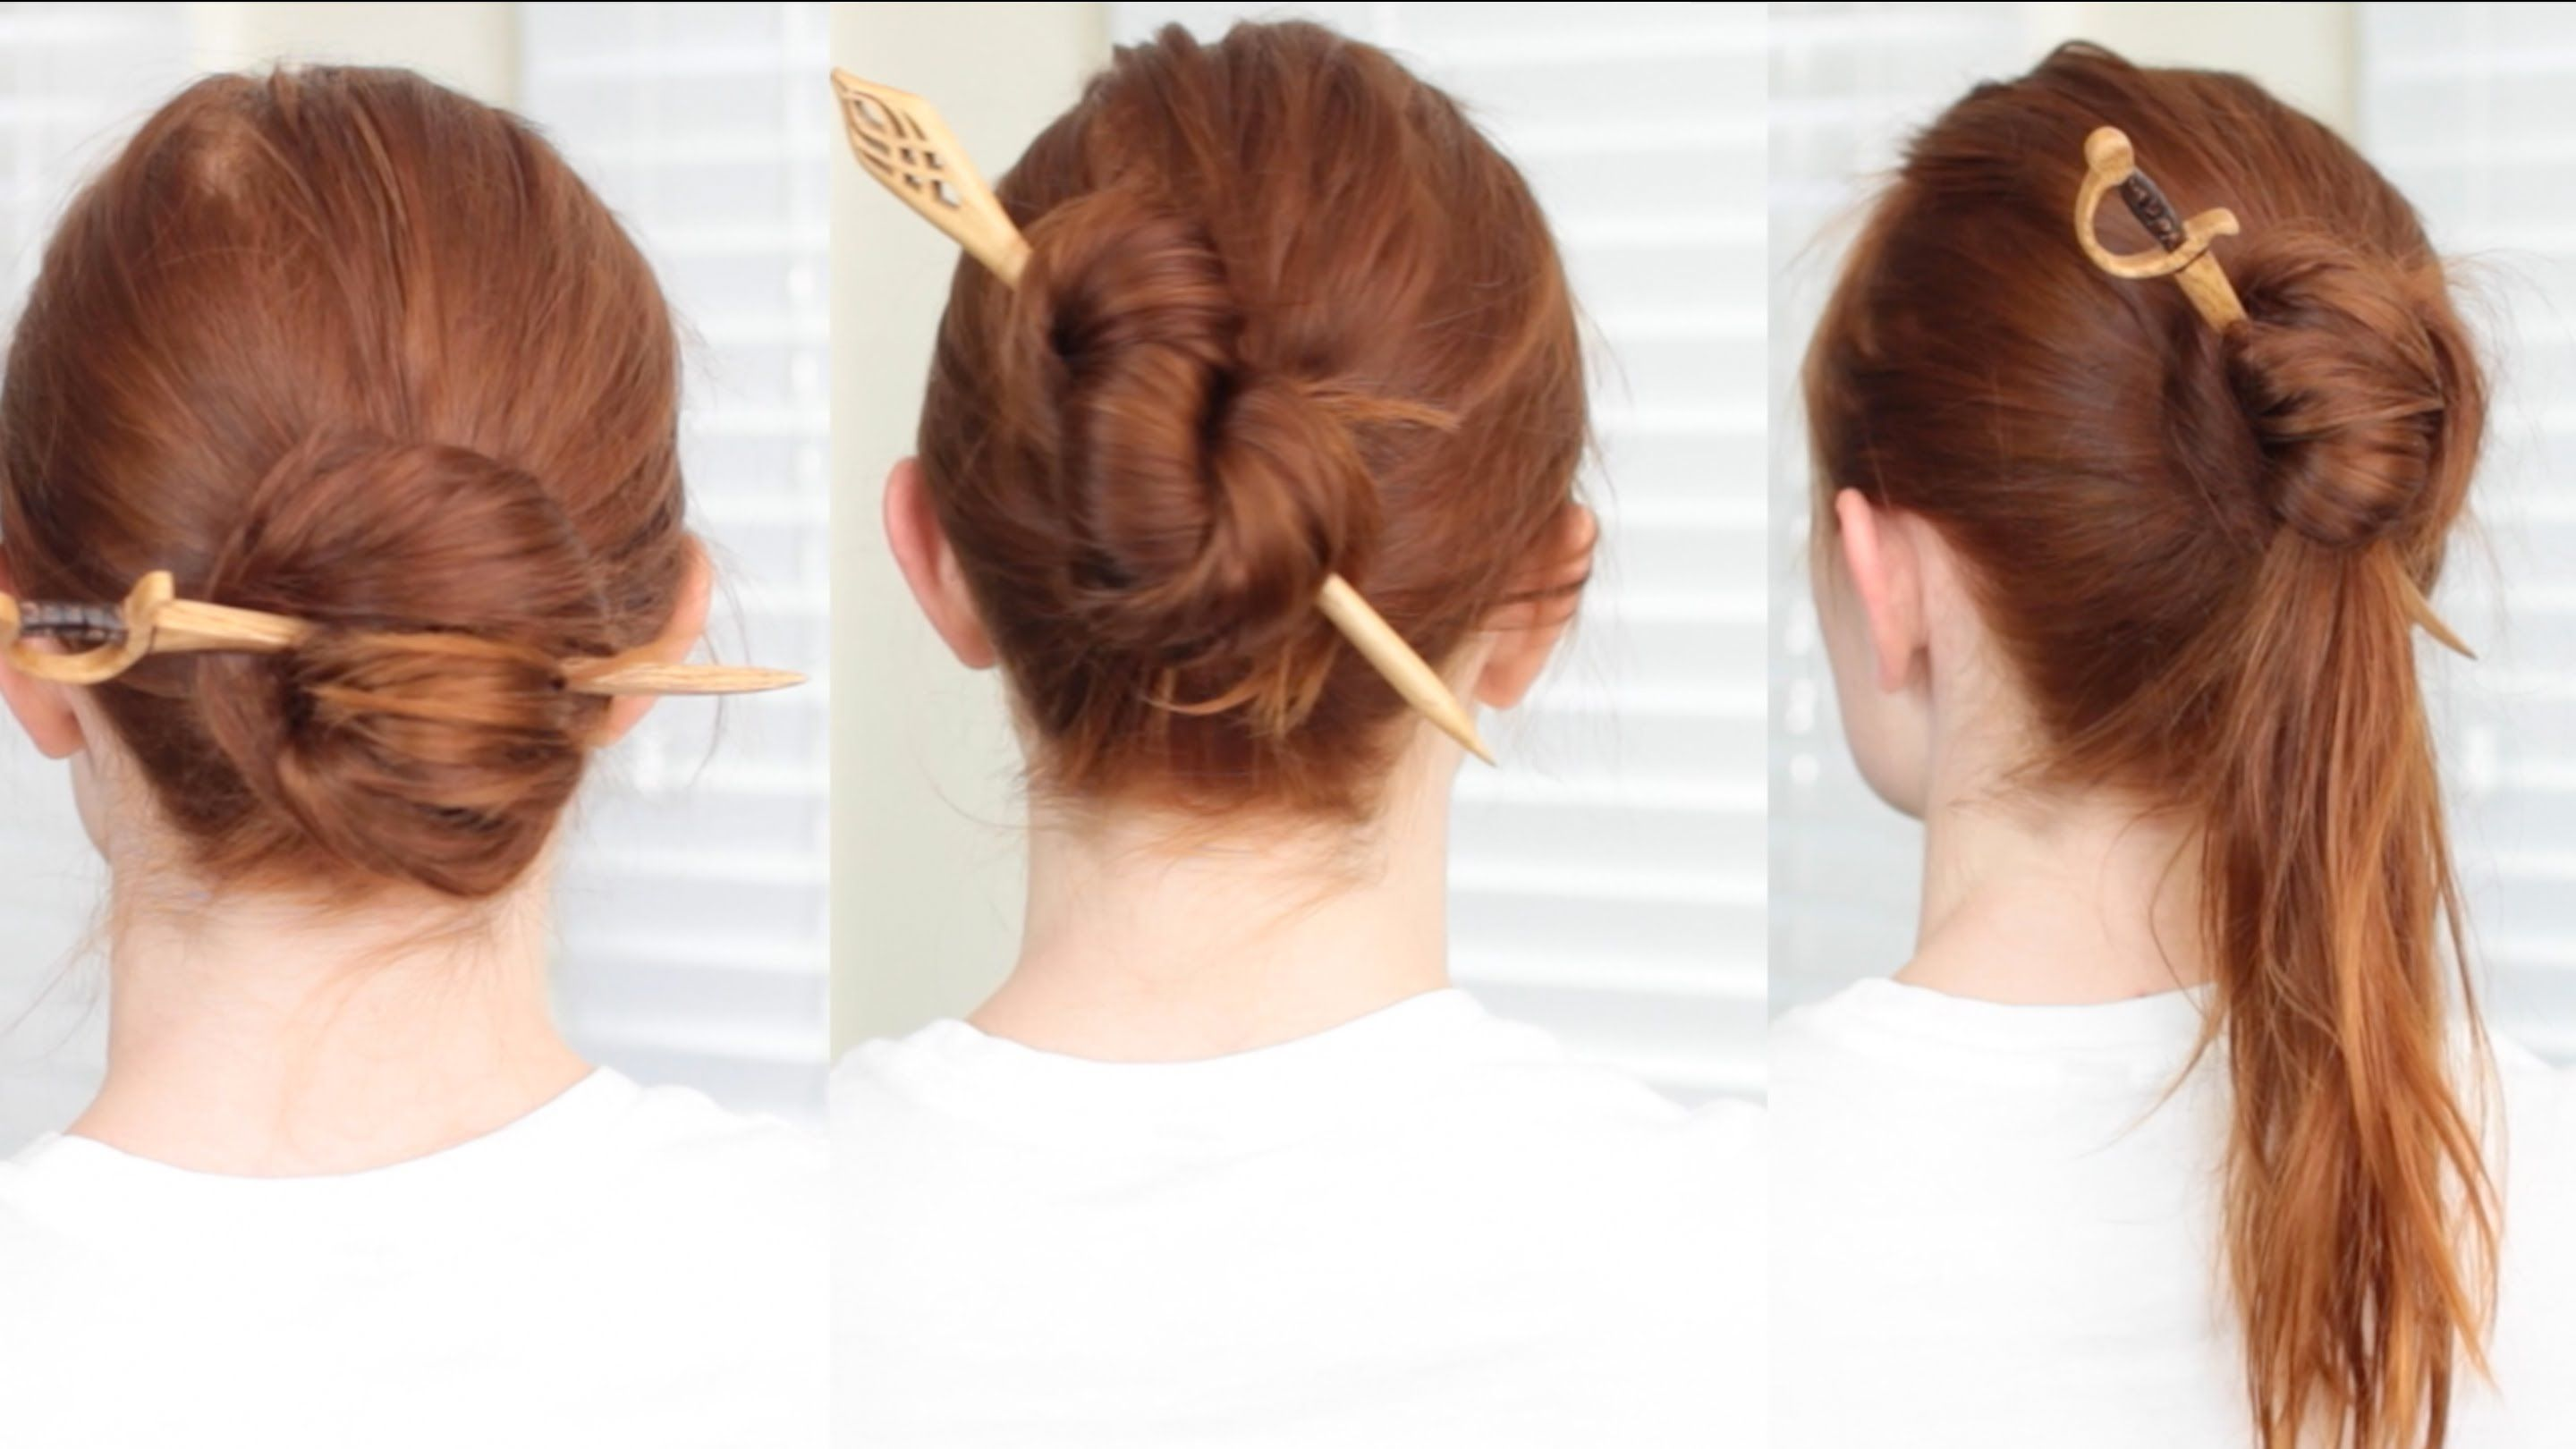 Sometimes we just want to throw our hair up into a bun to keep it